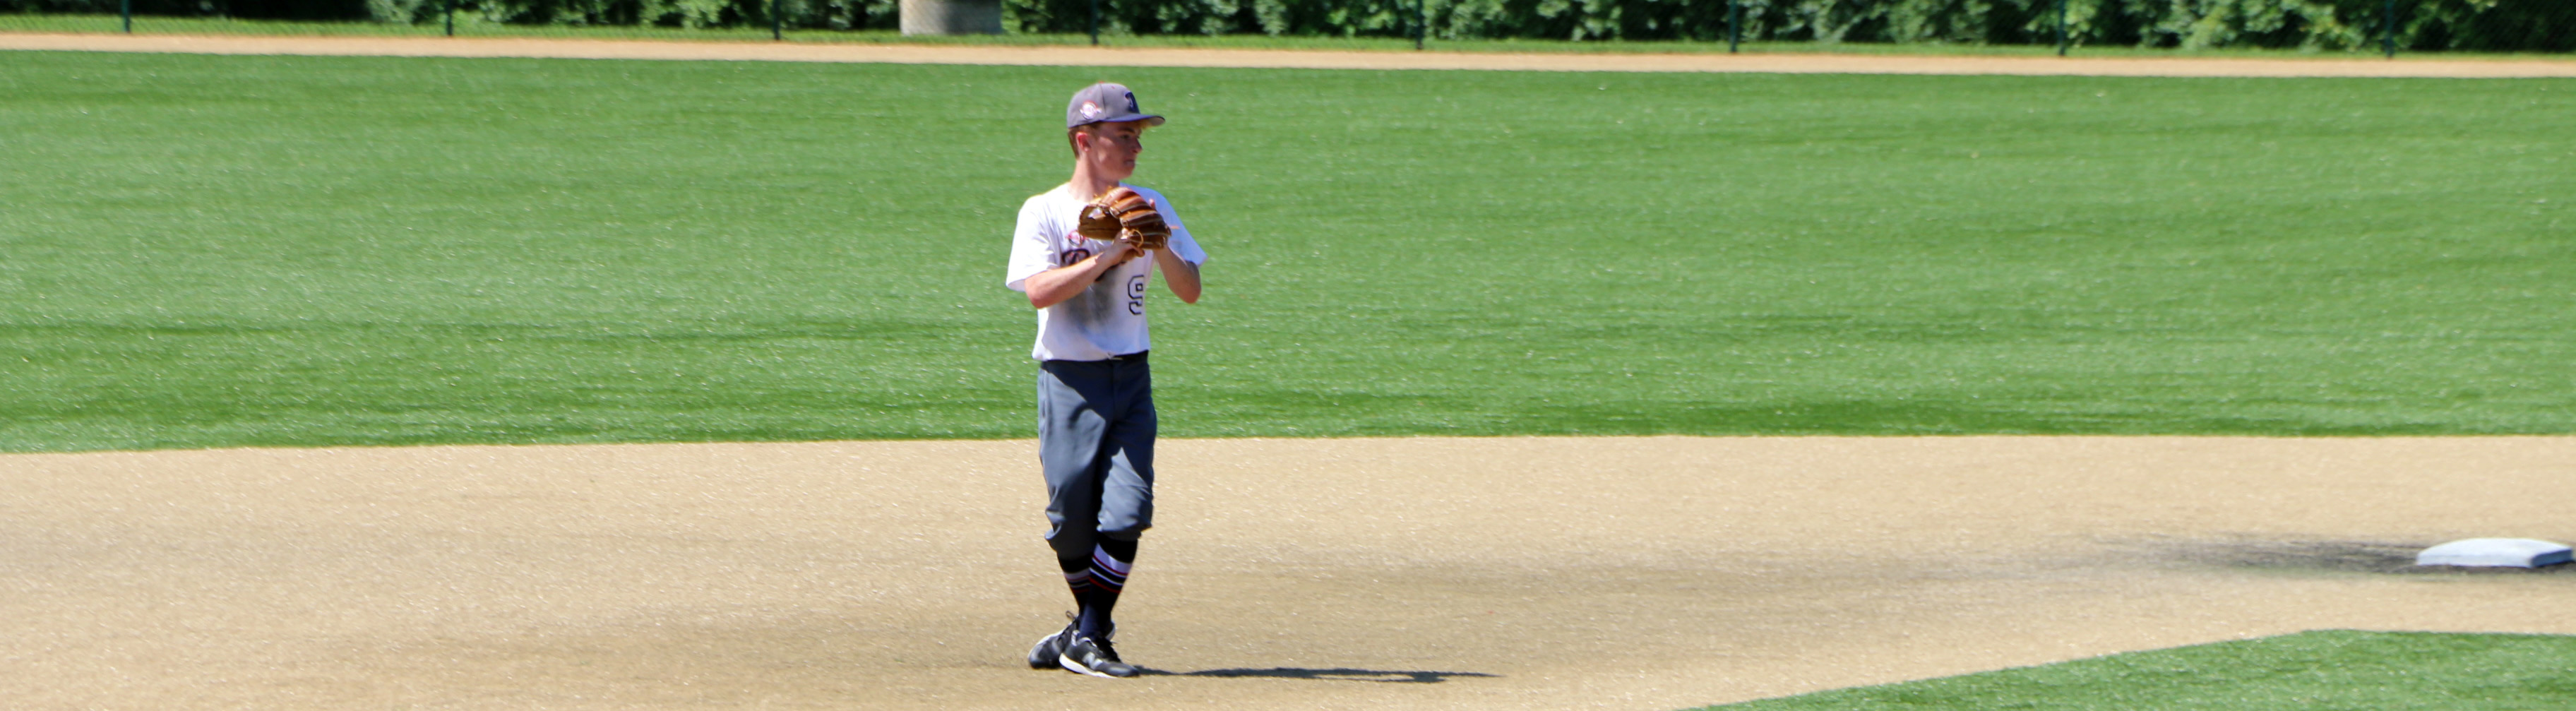 Dom warming up between innings